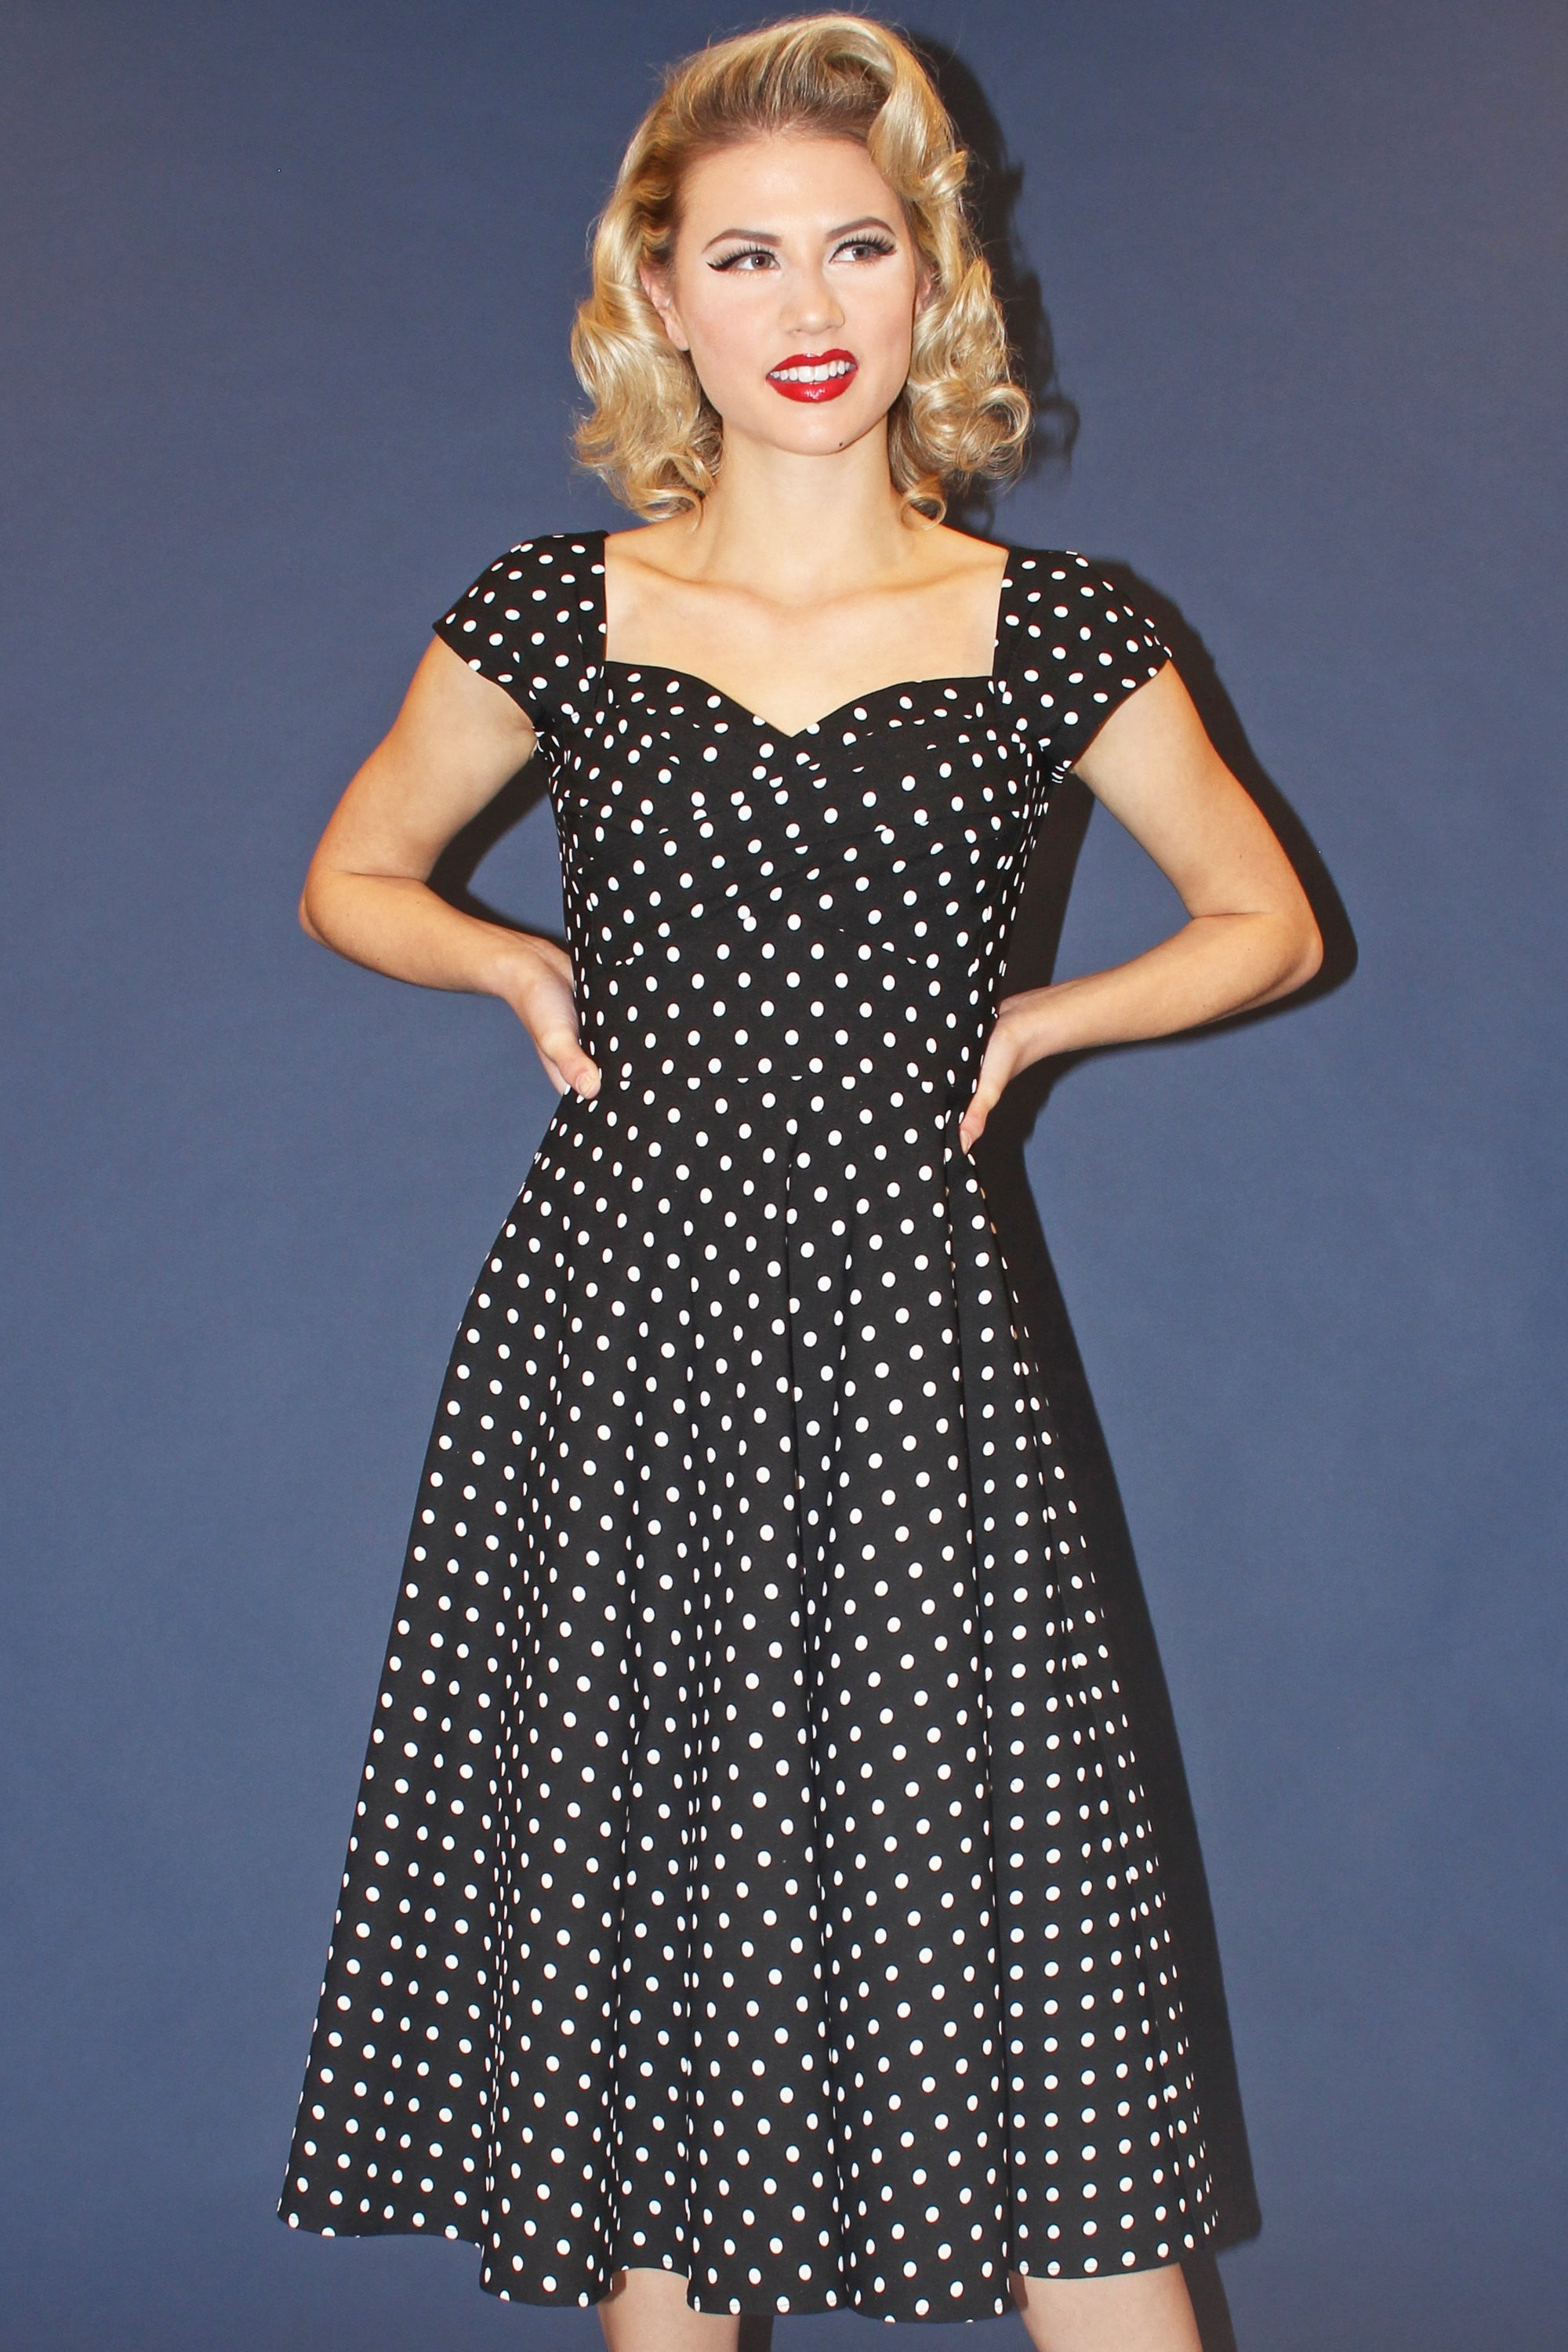 Vintage Evening Gown Black and White Polka Dot XS Tuxedo Styling Empire Waist